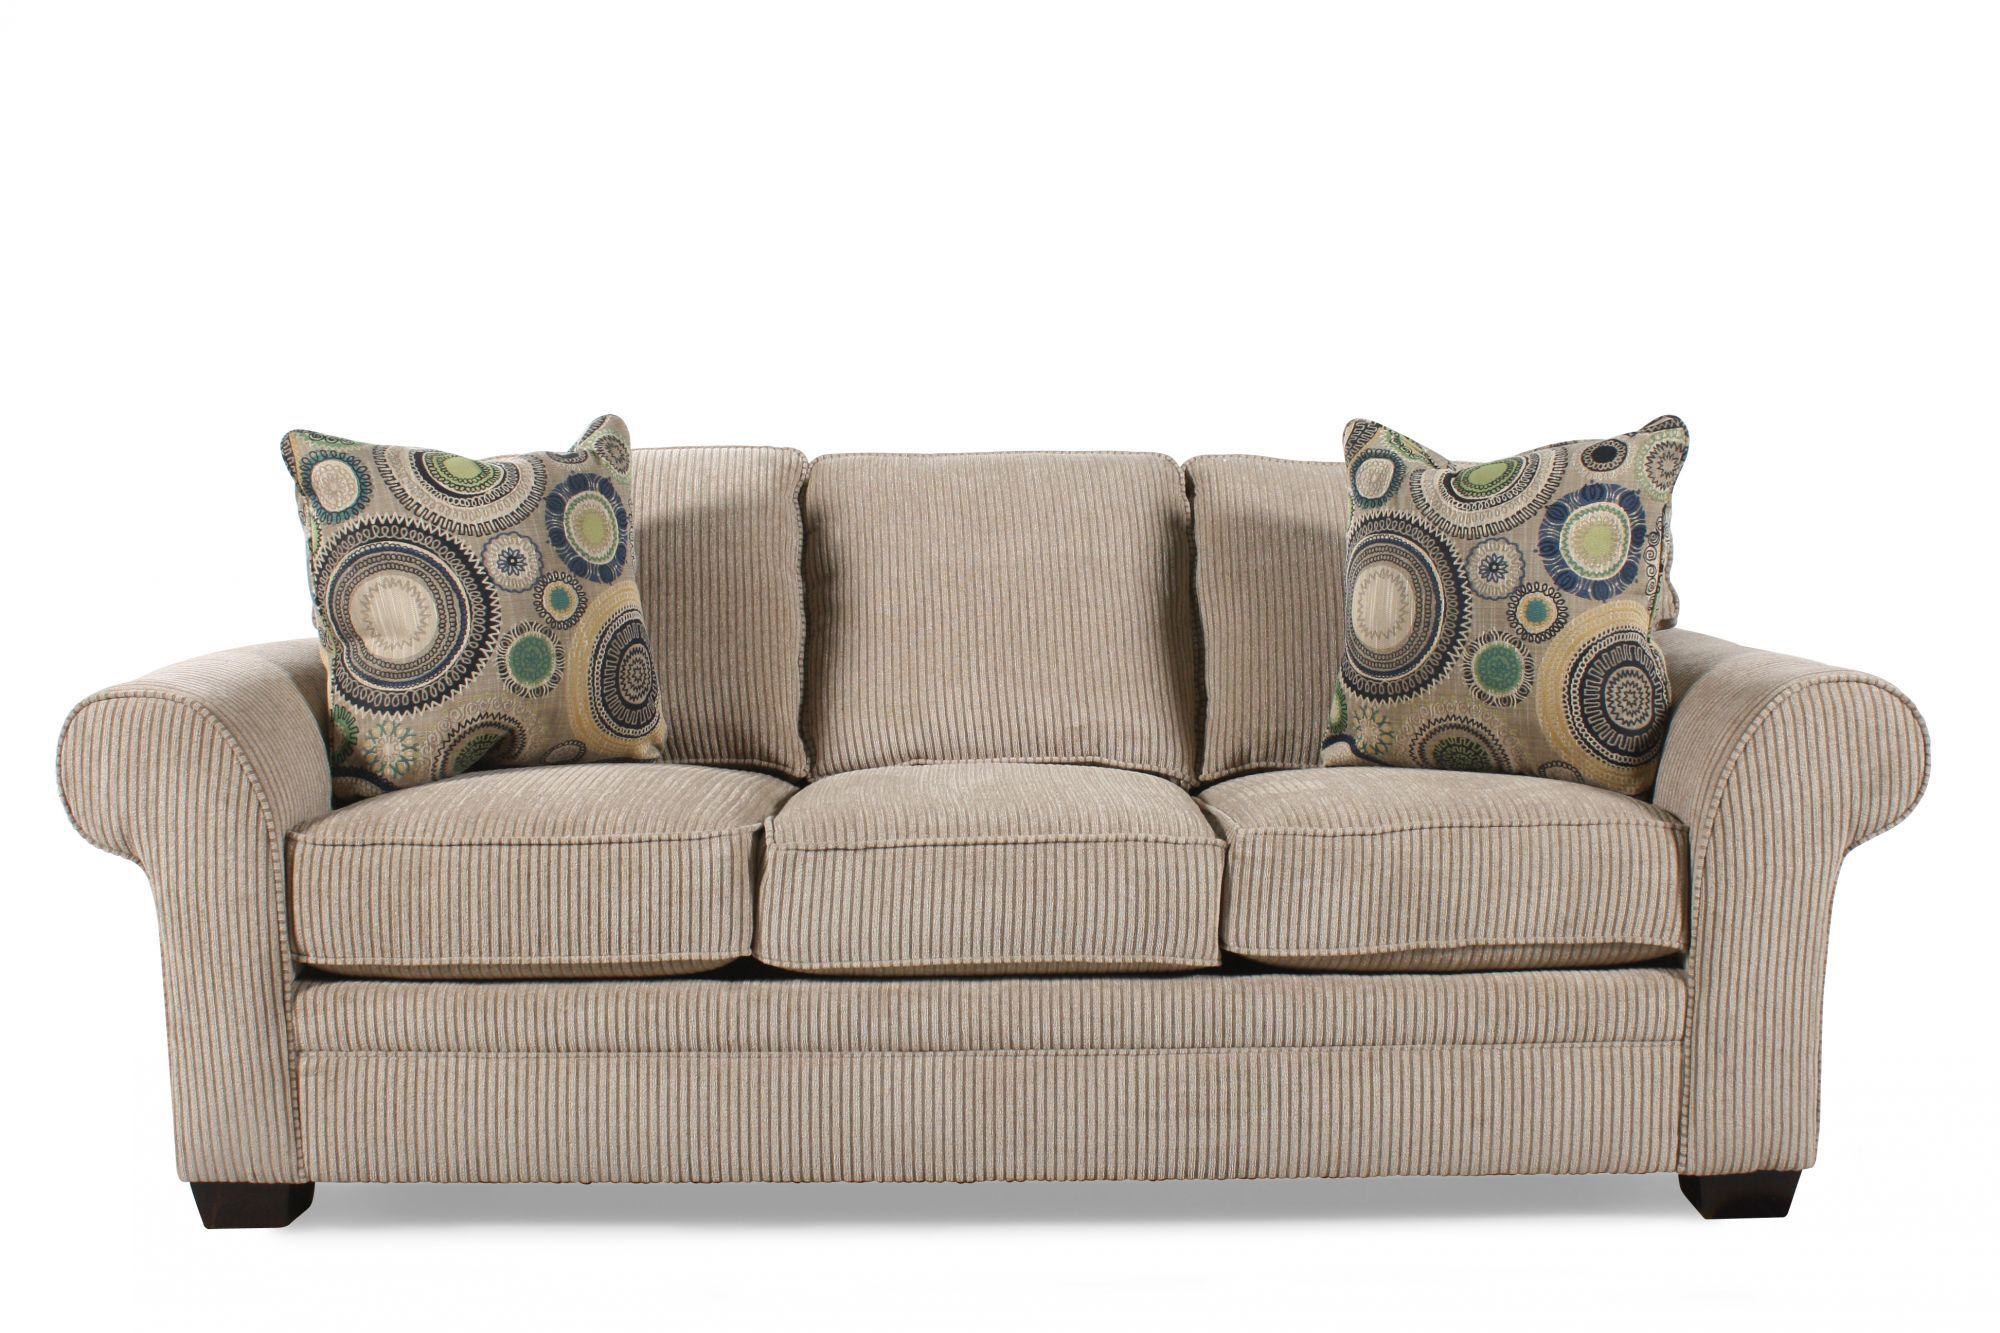 ... Broyhill Zachary Sleeper Sofa Mathis Brothers Furniture ...